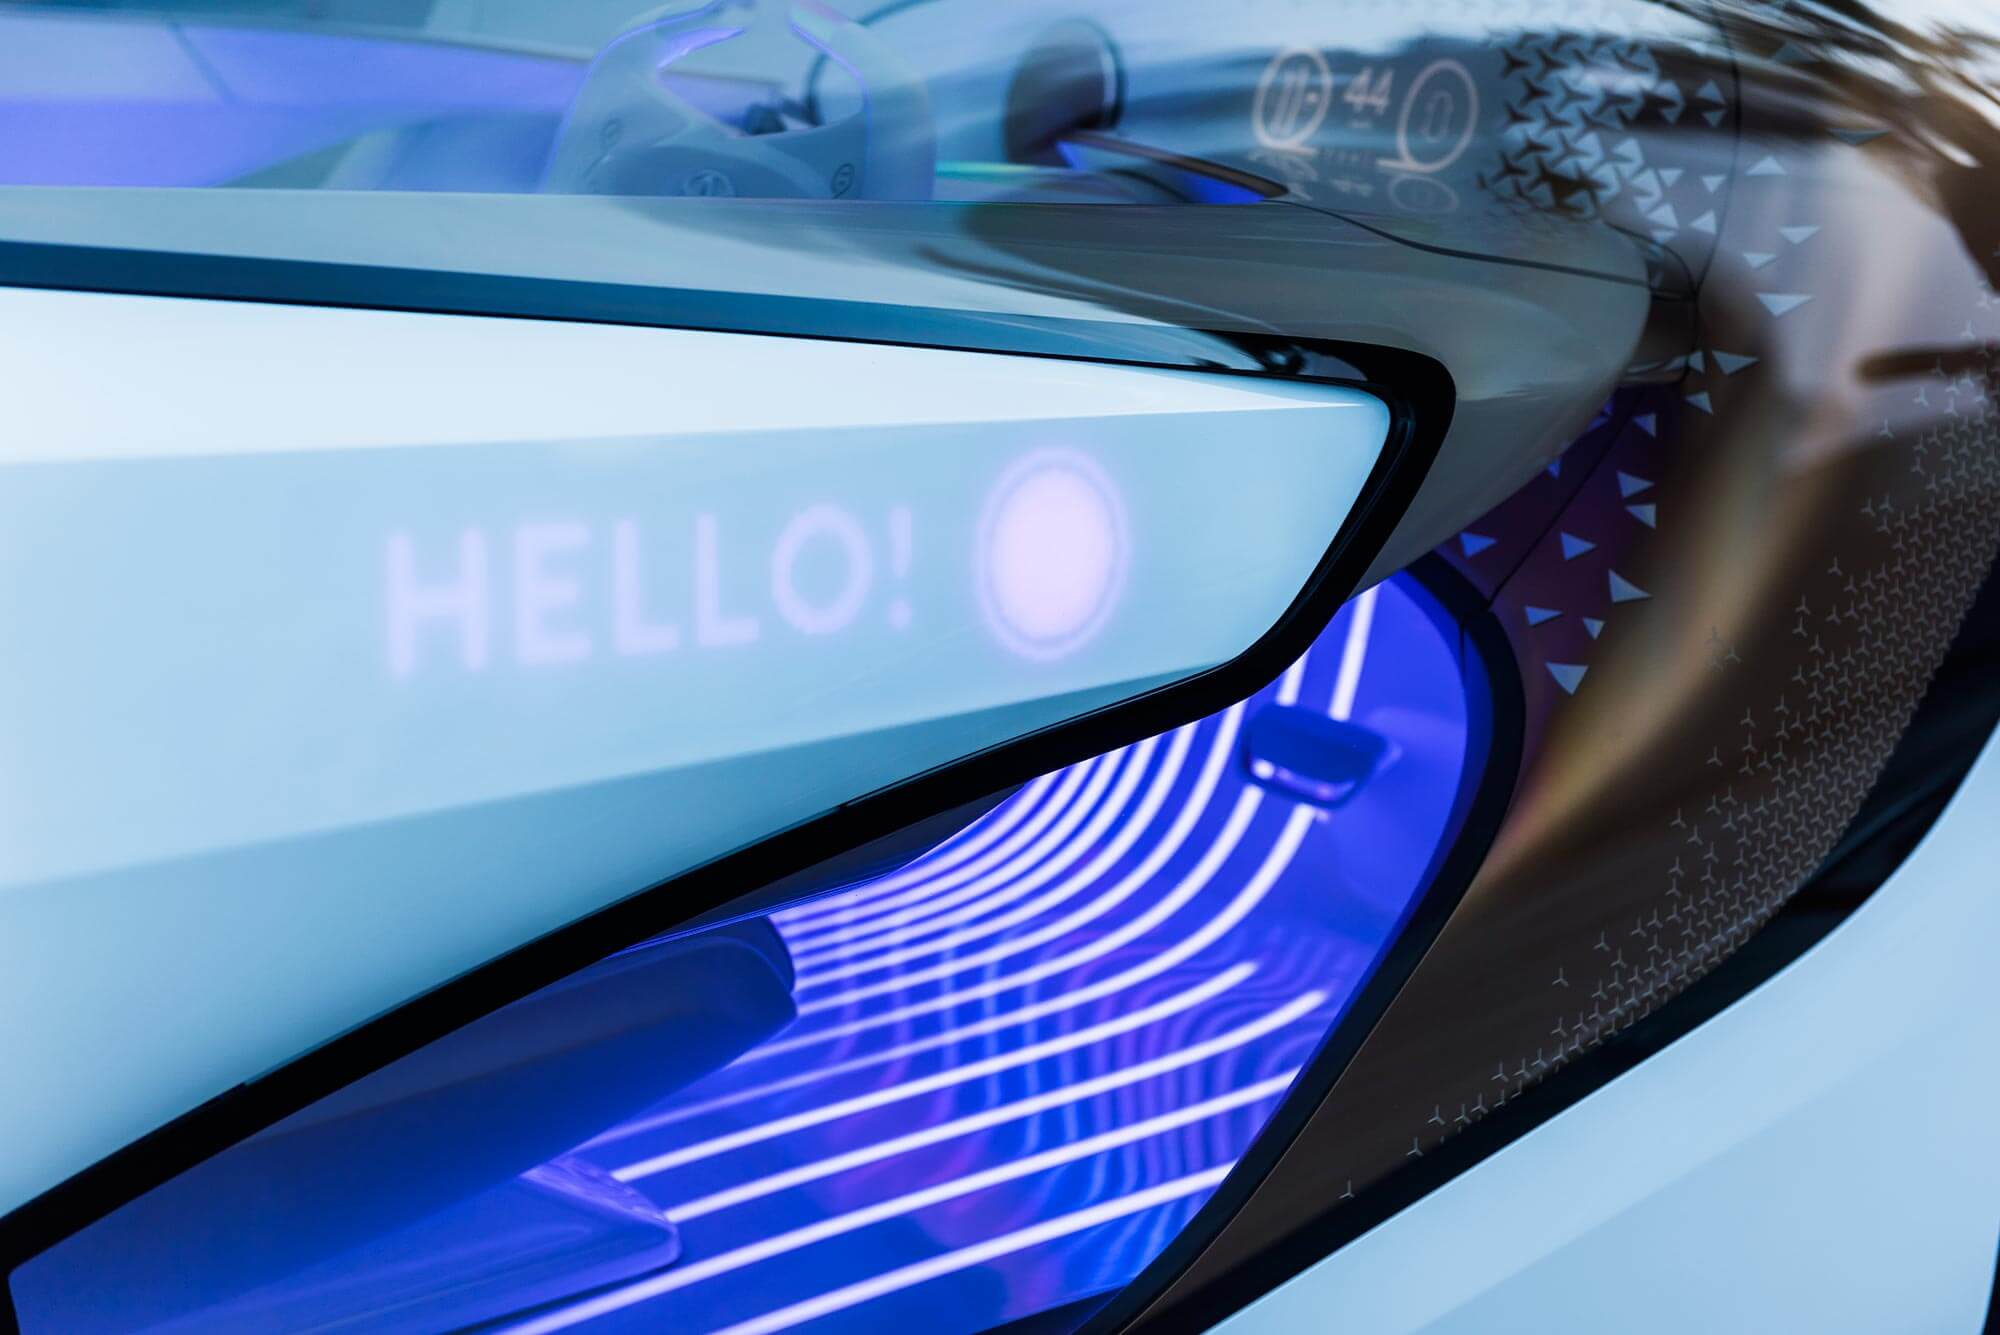 Rendering showing the messages displayed on the rear panel of Toyota's Concept-i vehicle.